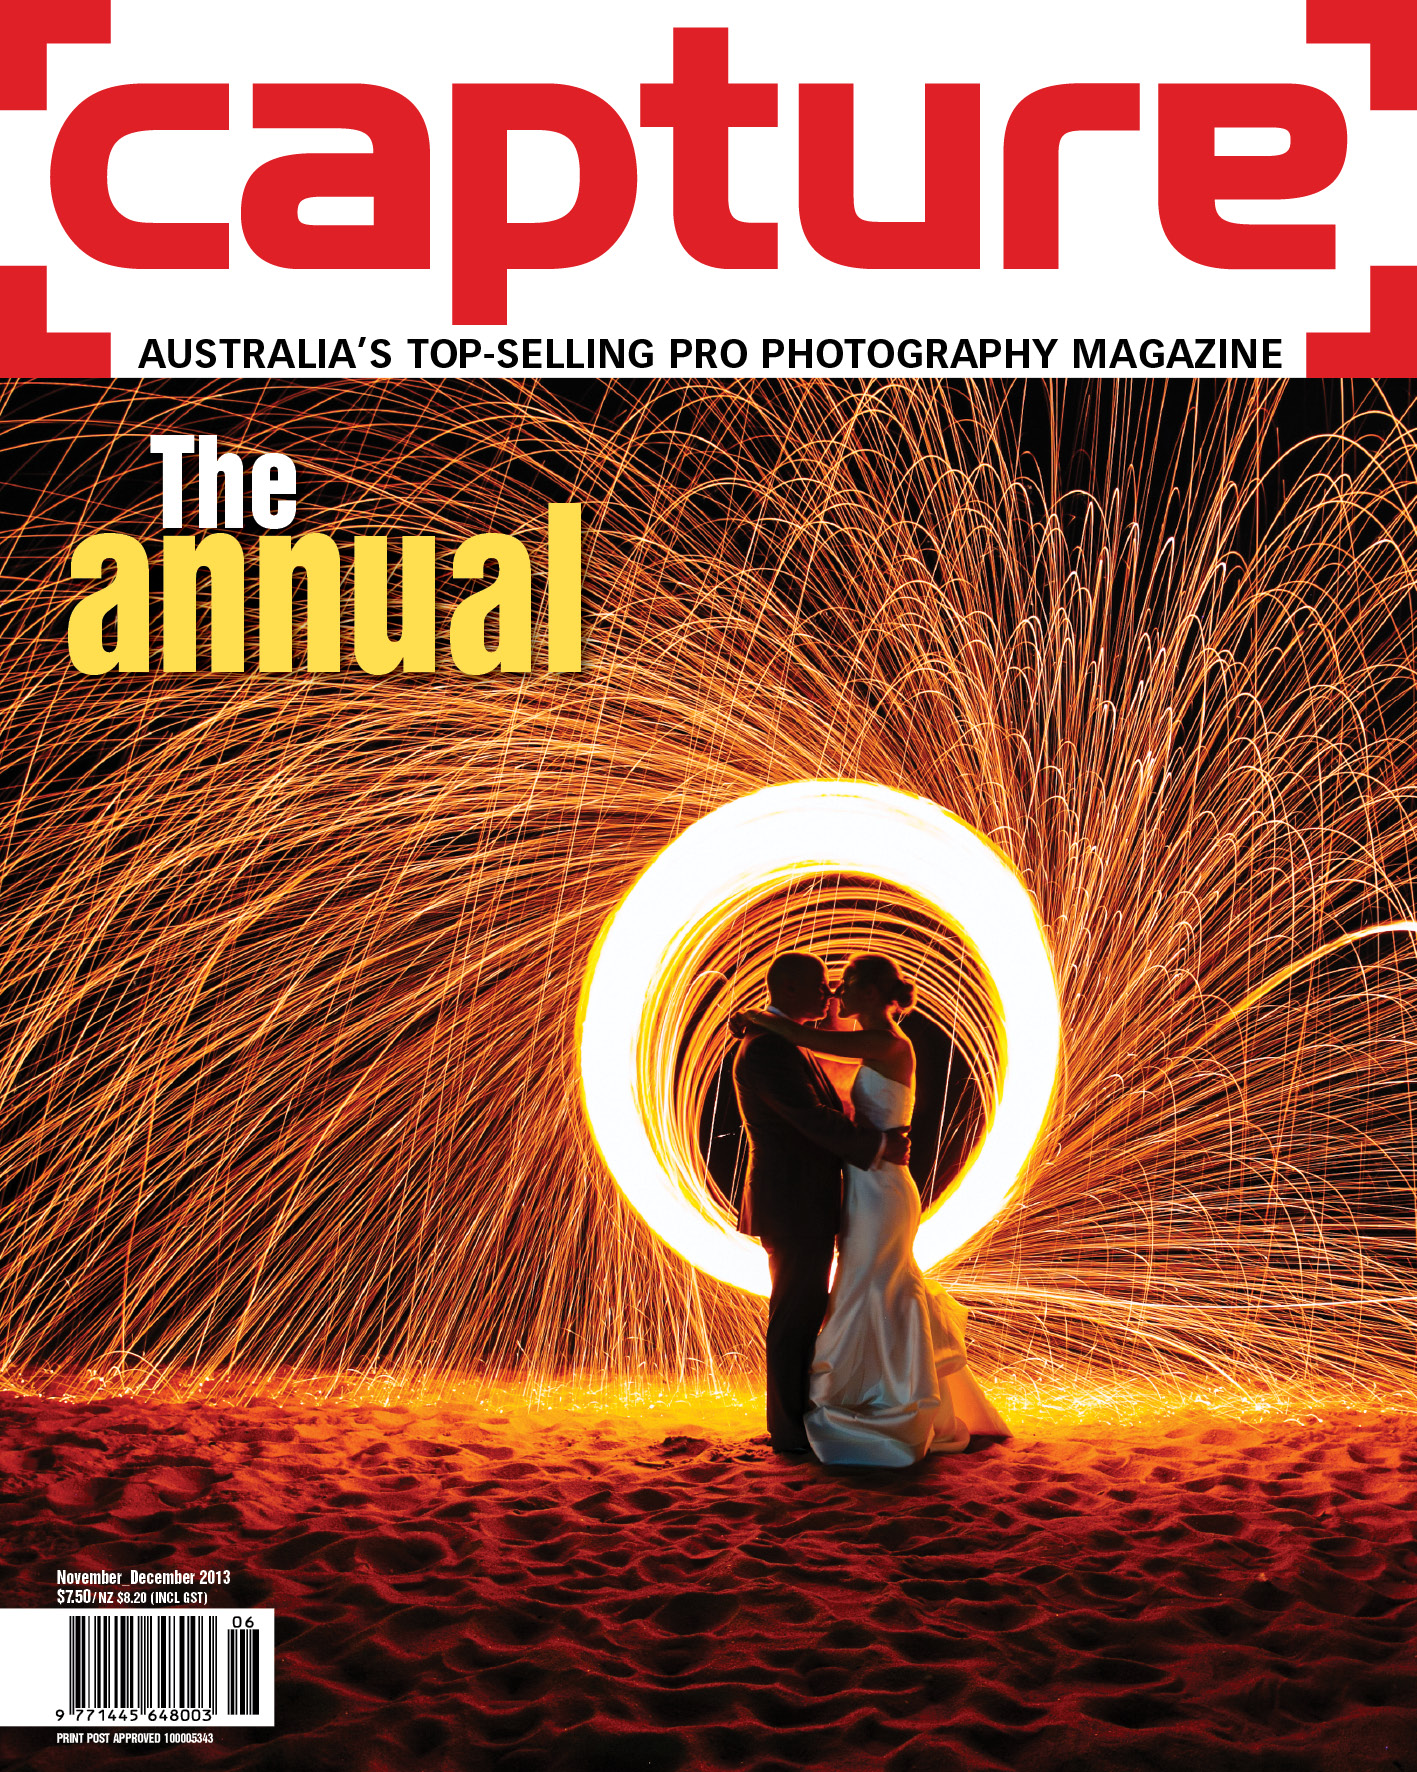 Ben Swinnerton_Melbourne Wedding Photographer_Capture The Annual Cover